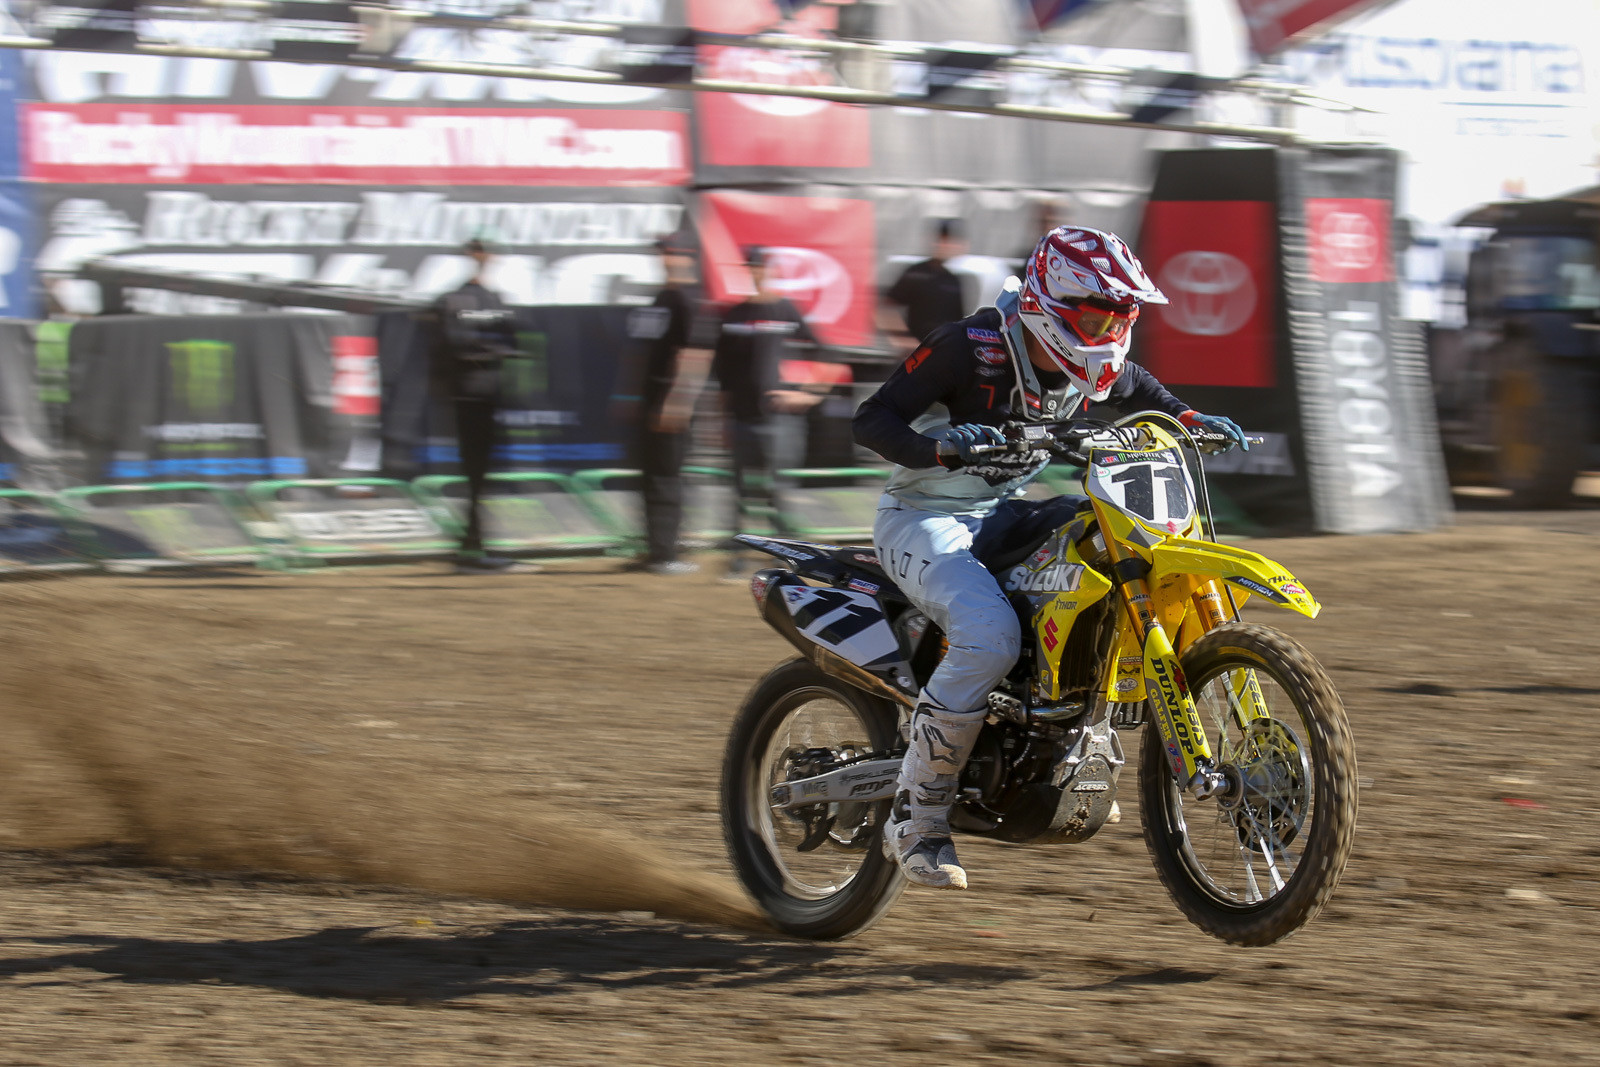 Man, were we happy to see Kyle Chisholm back this week after a really hard crash at the start of last week's 450 LCQ.